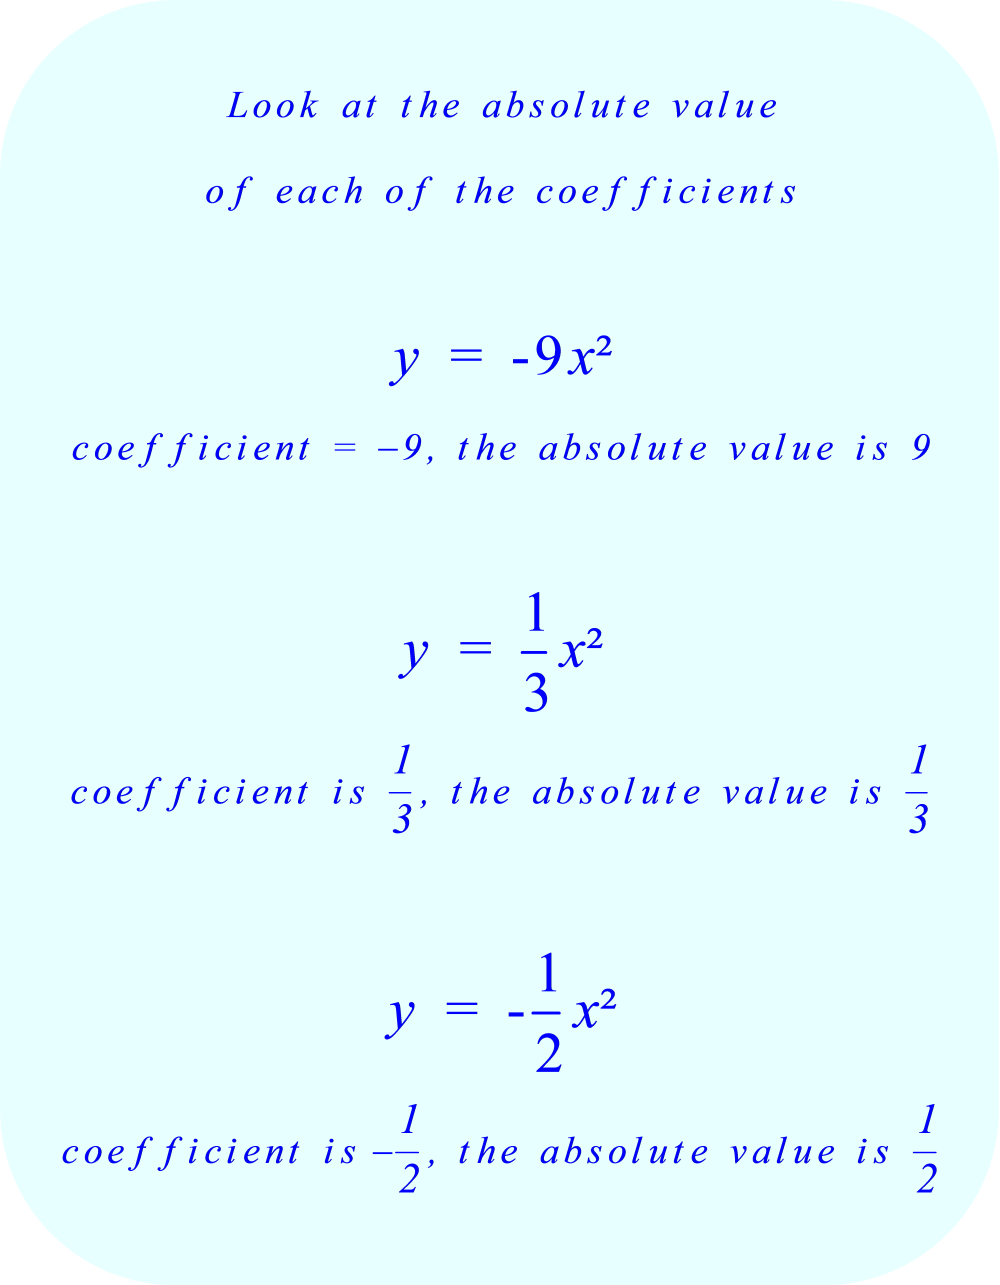 Look at the absolute value of each of the coefficients